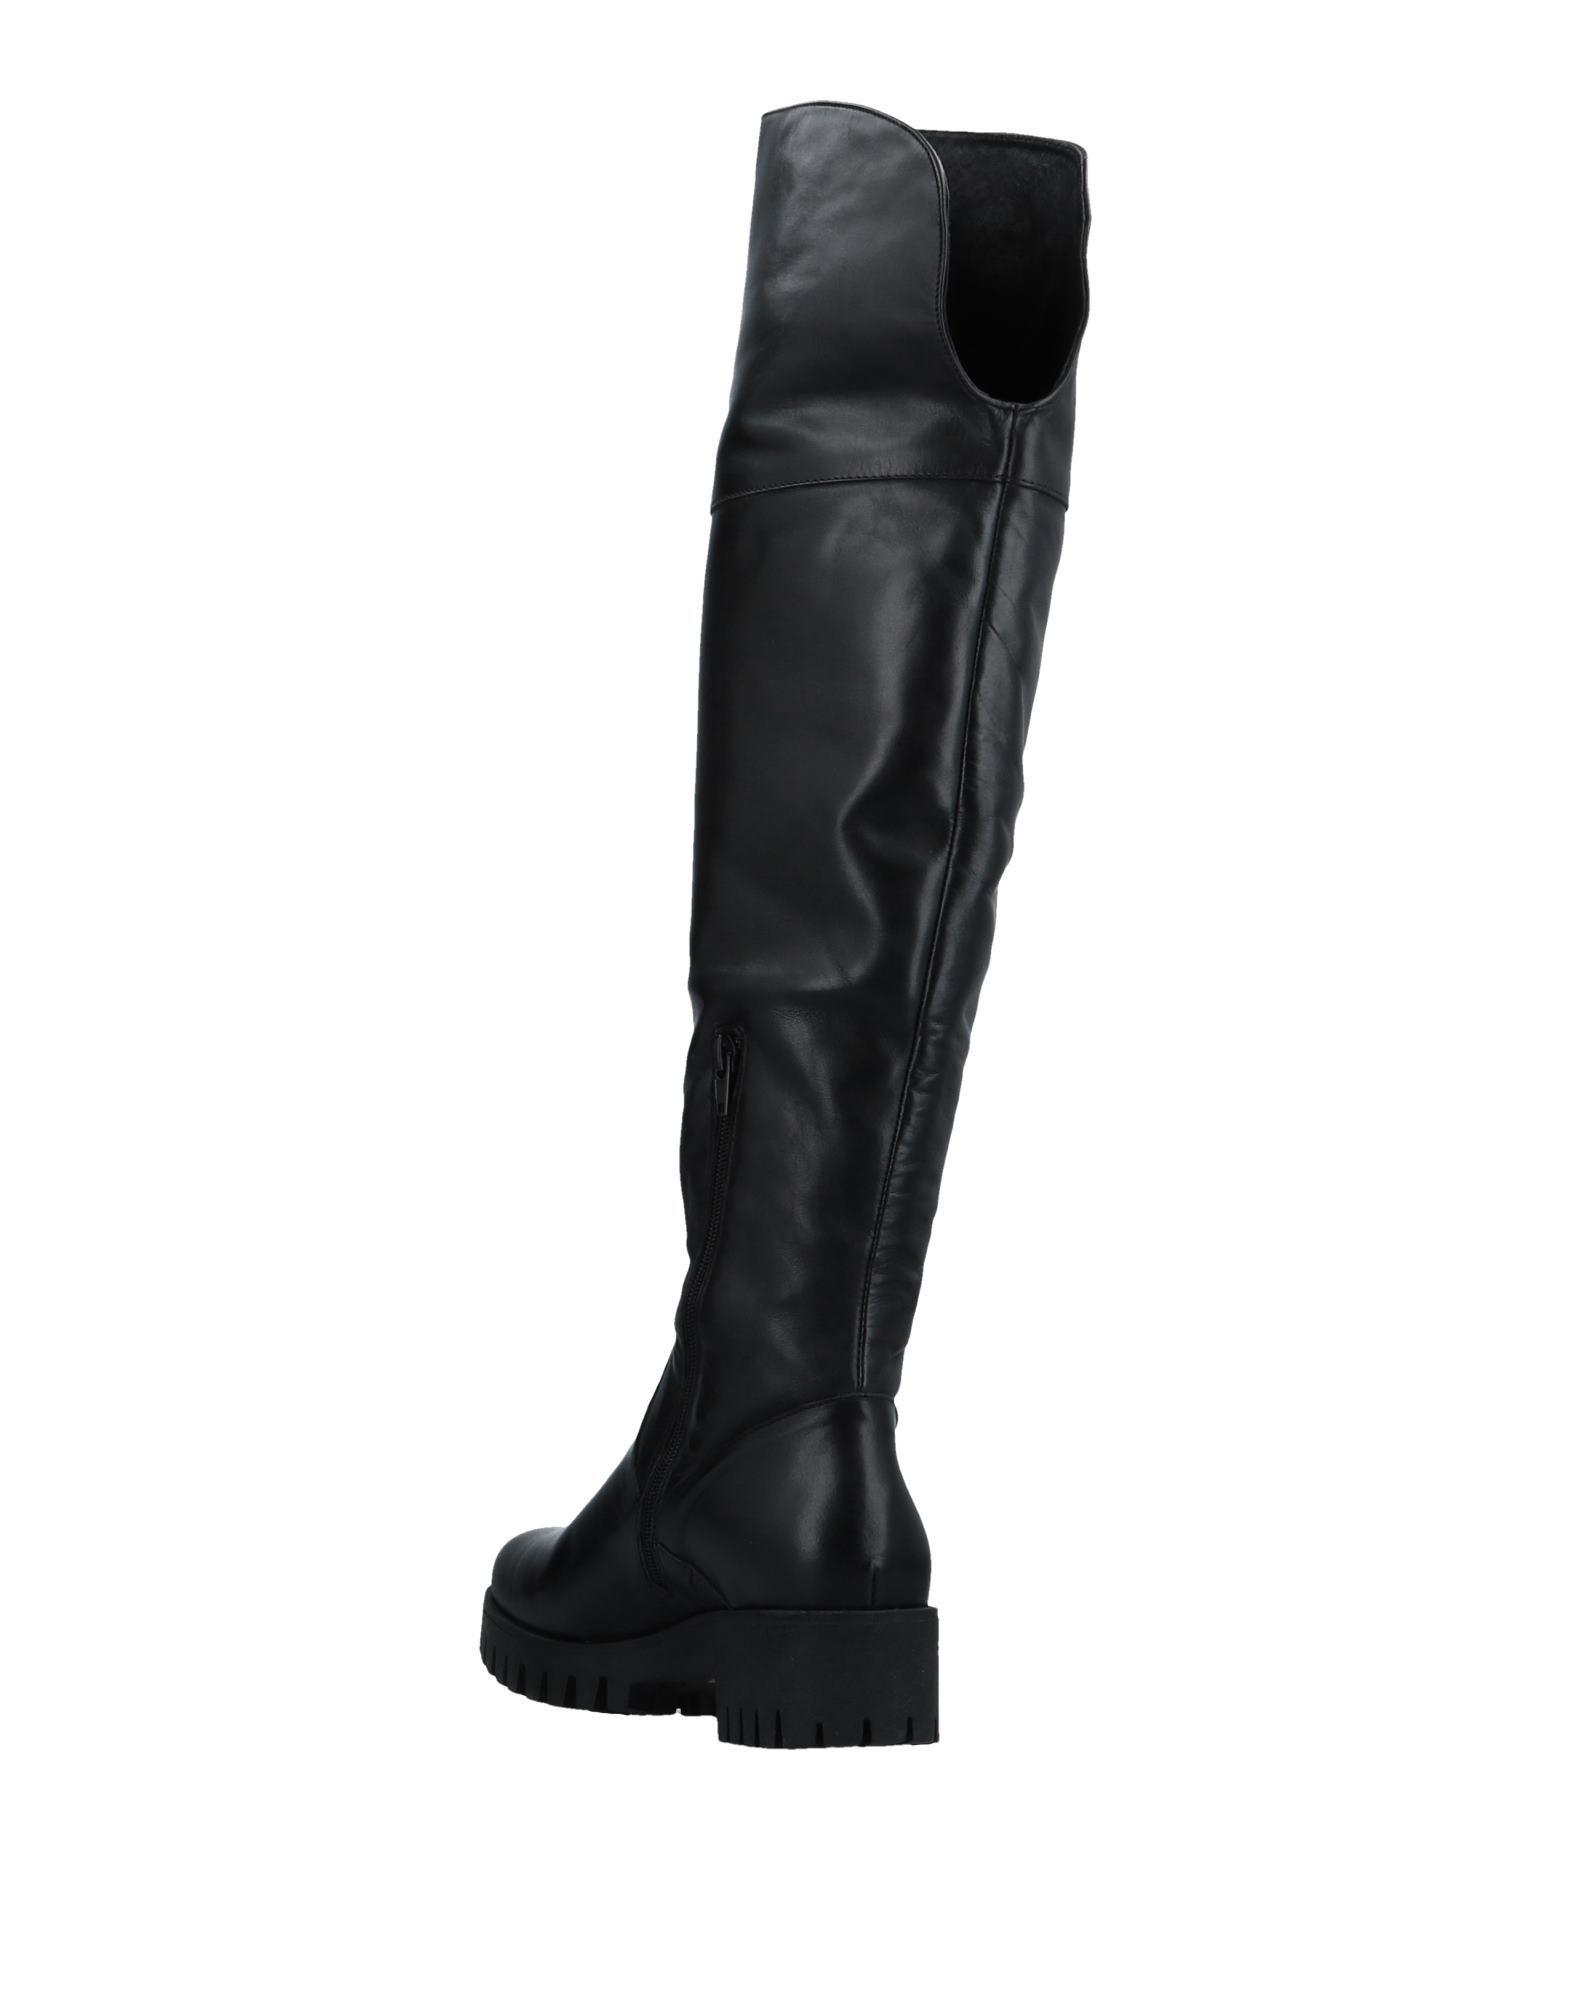 Lb Leather Boots in Black